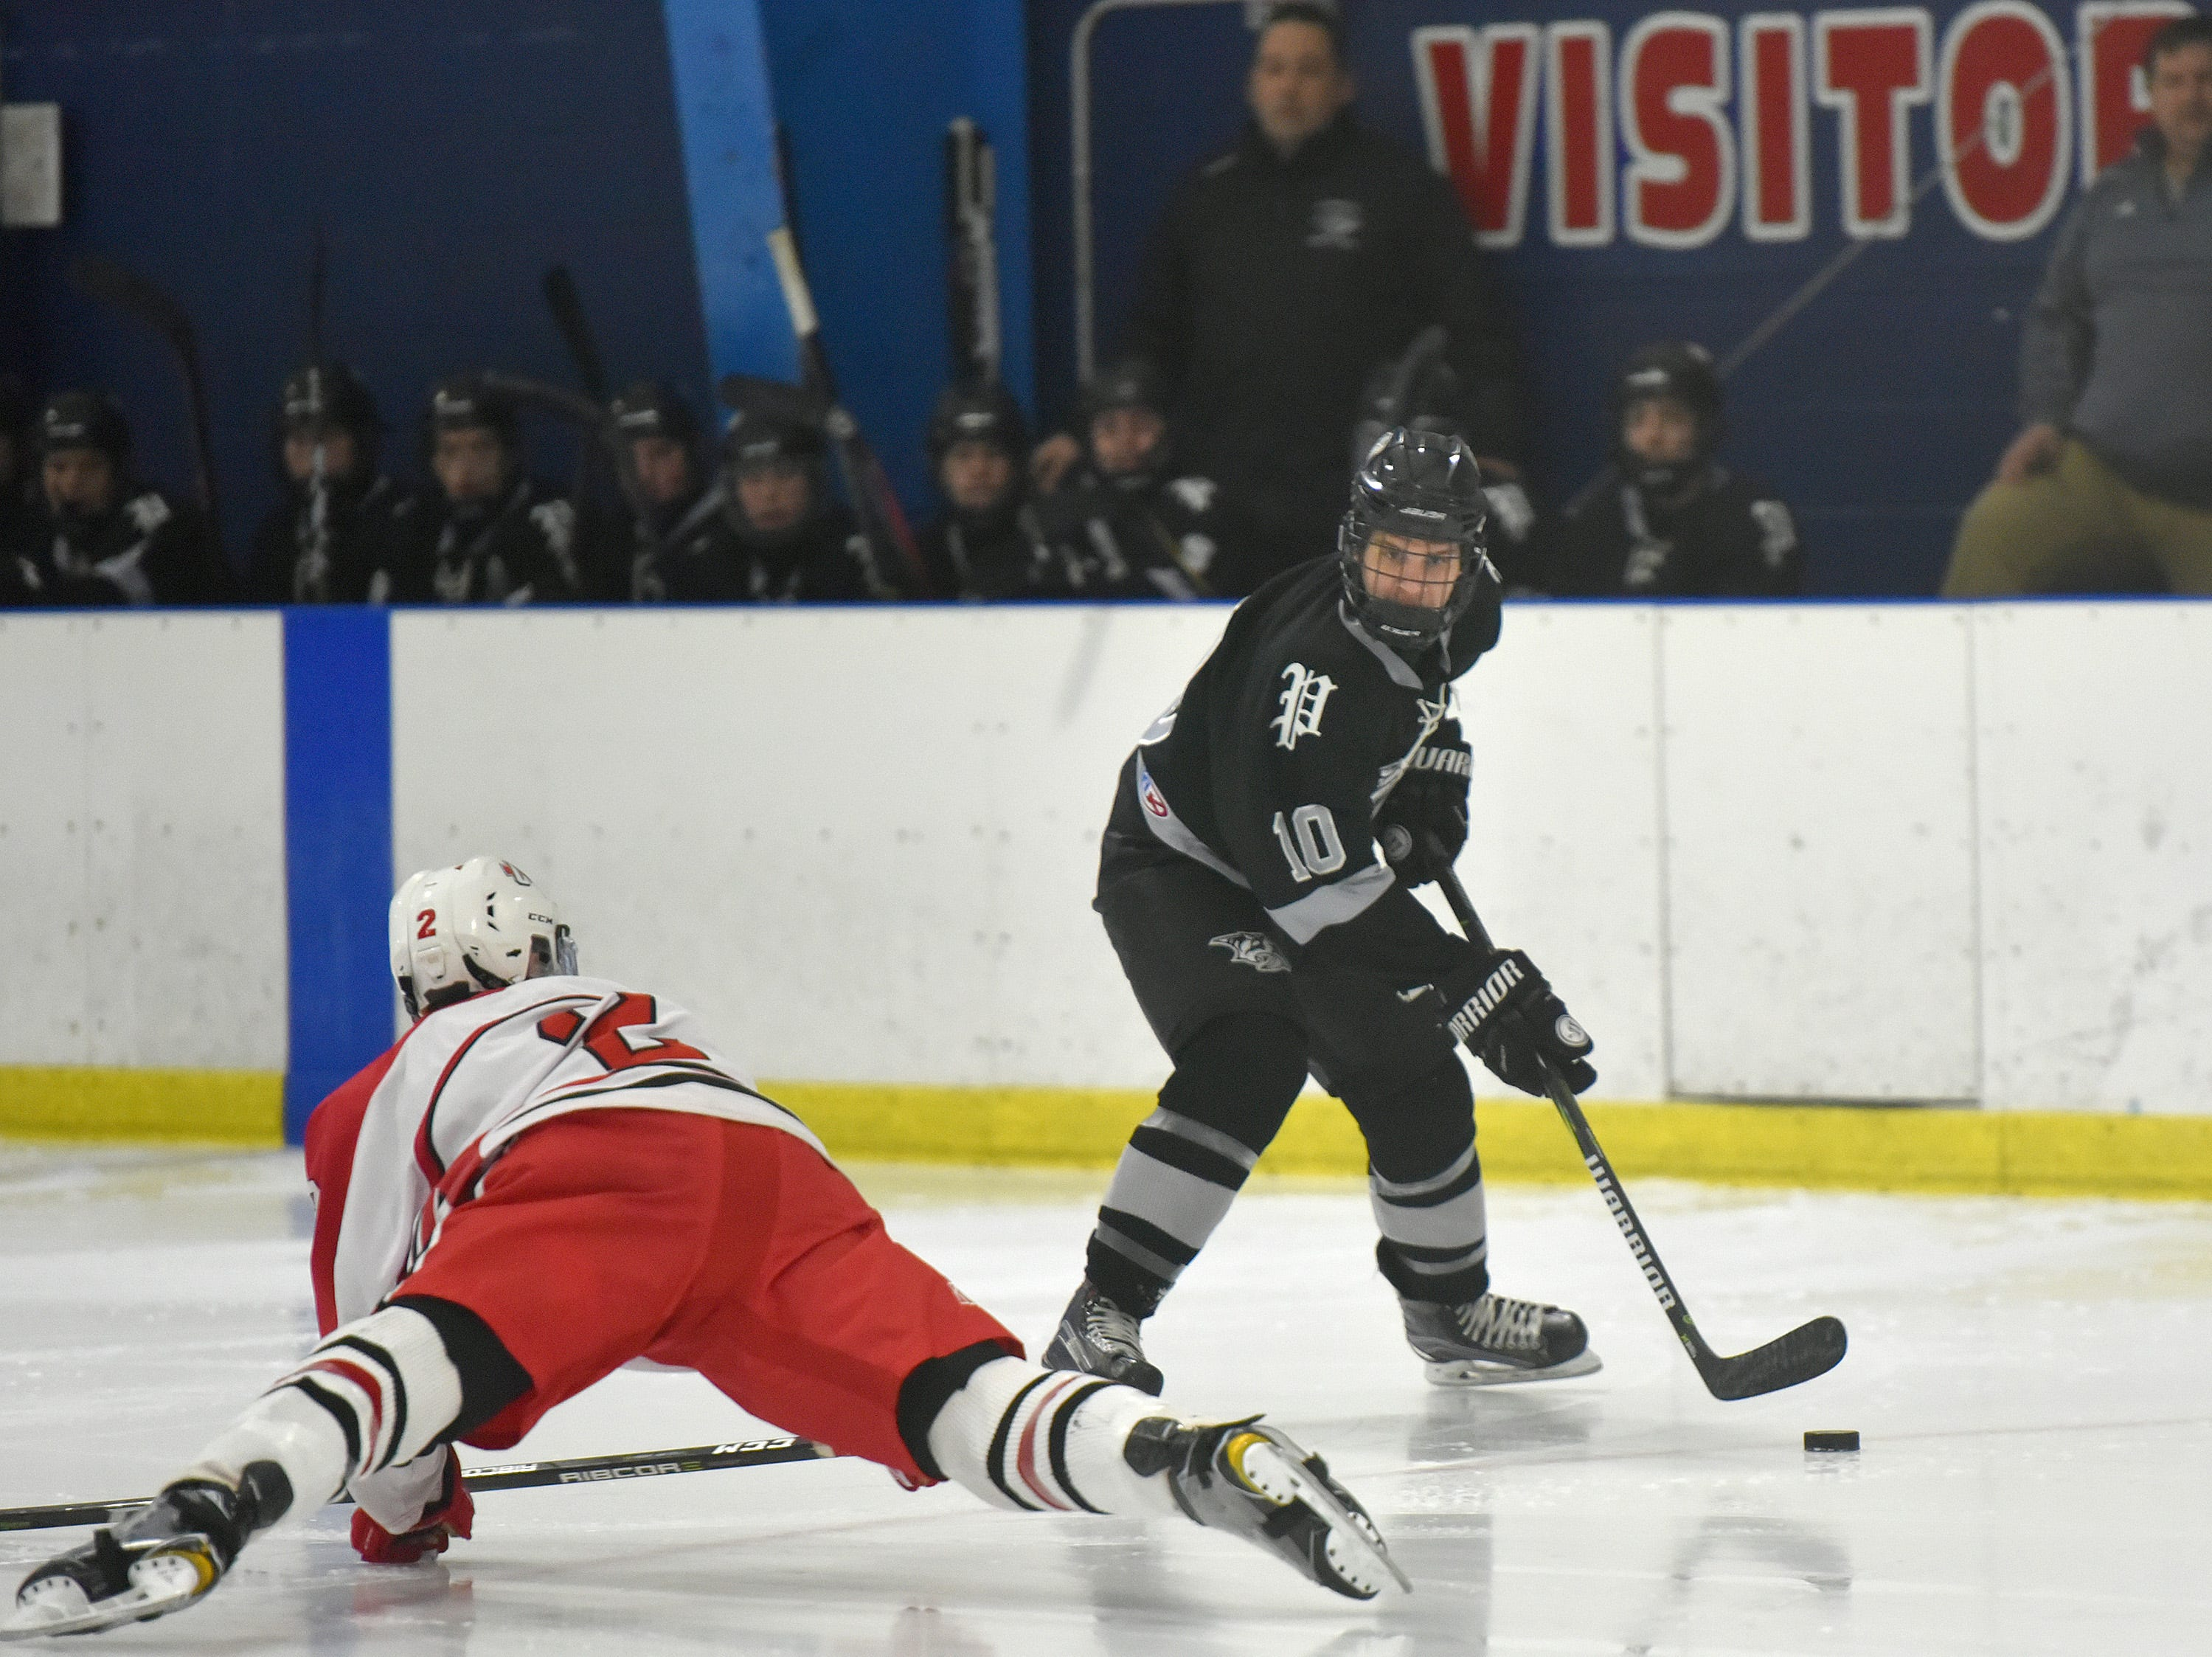 Wildcat forward Jeff Koviak (10) skates past Chief Tyler Laski (2).